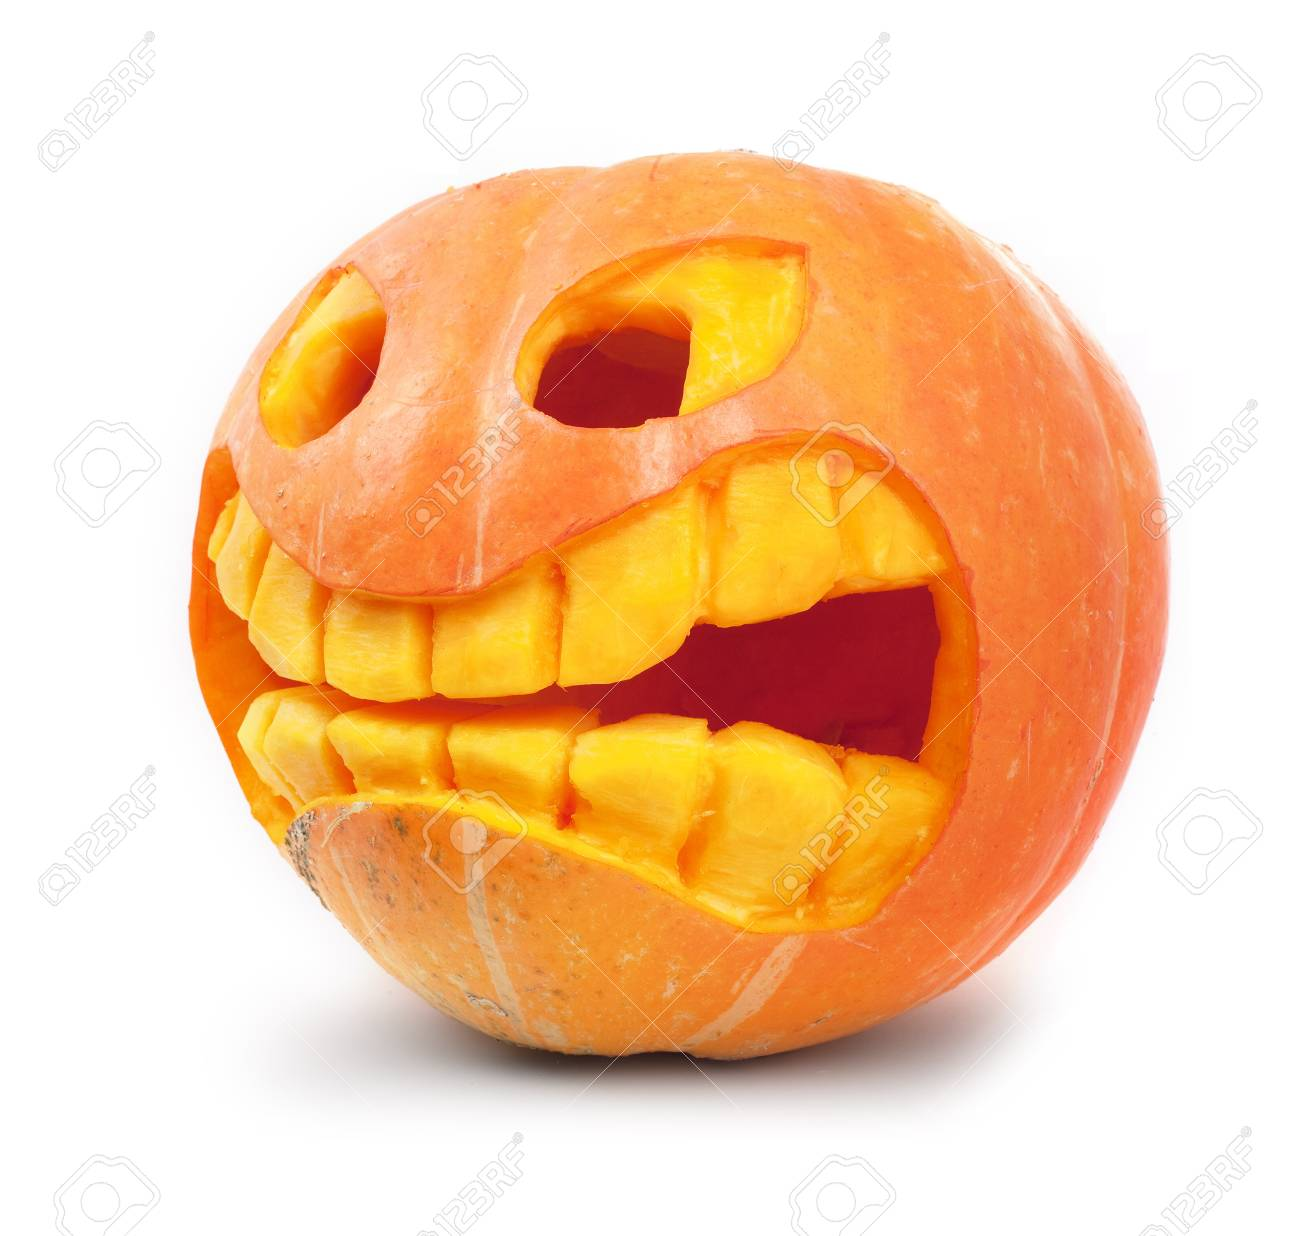 Halloween pumpkin isolated on a white background Stock Photo - 8056438